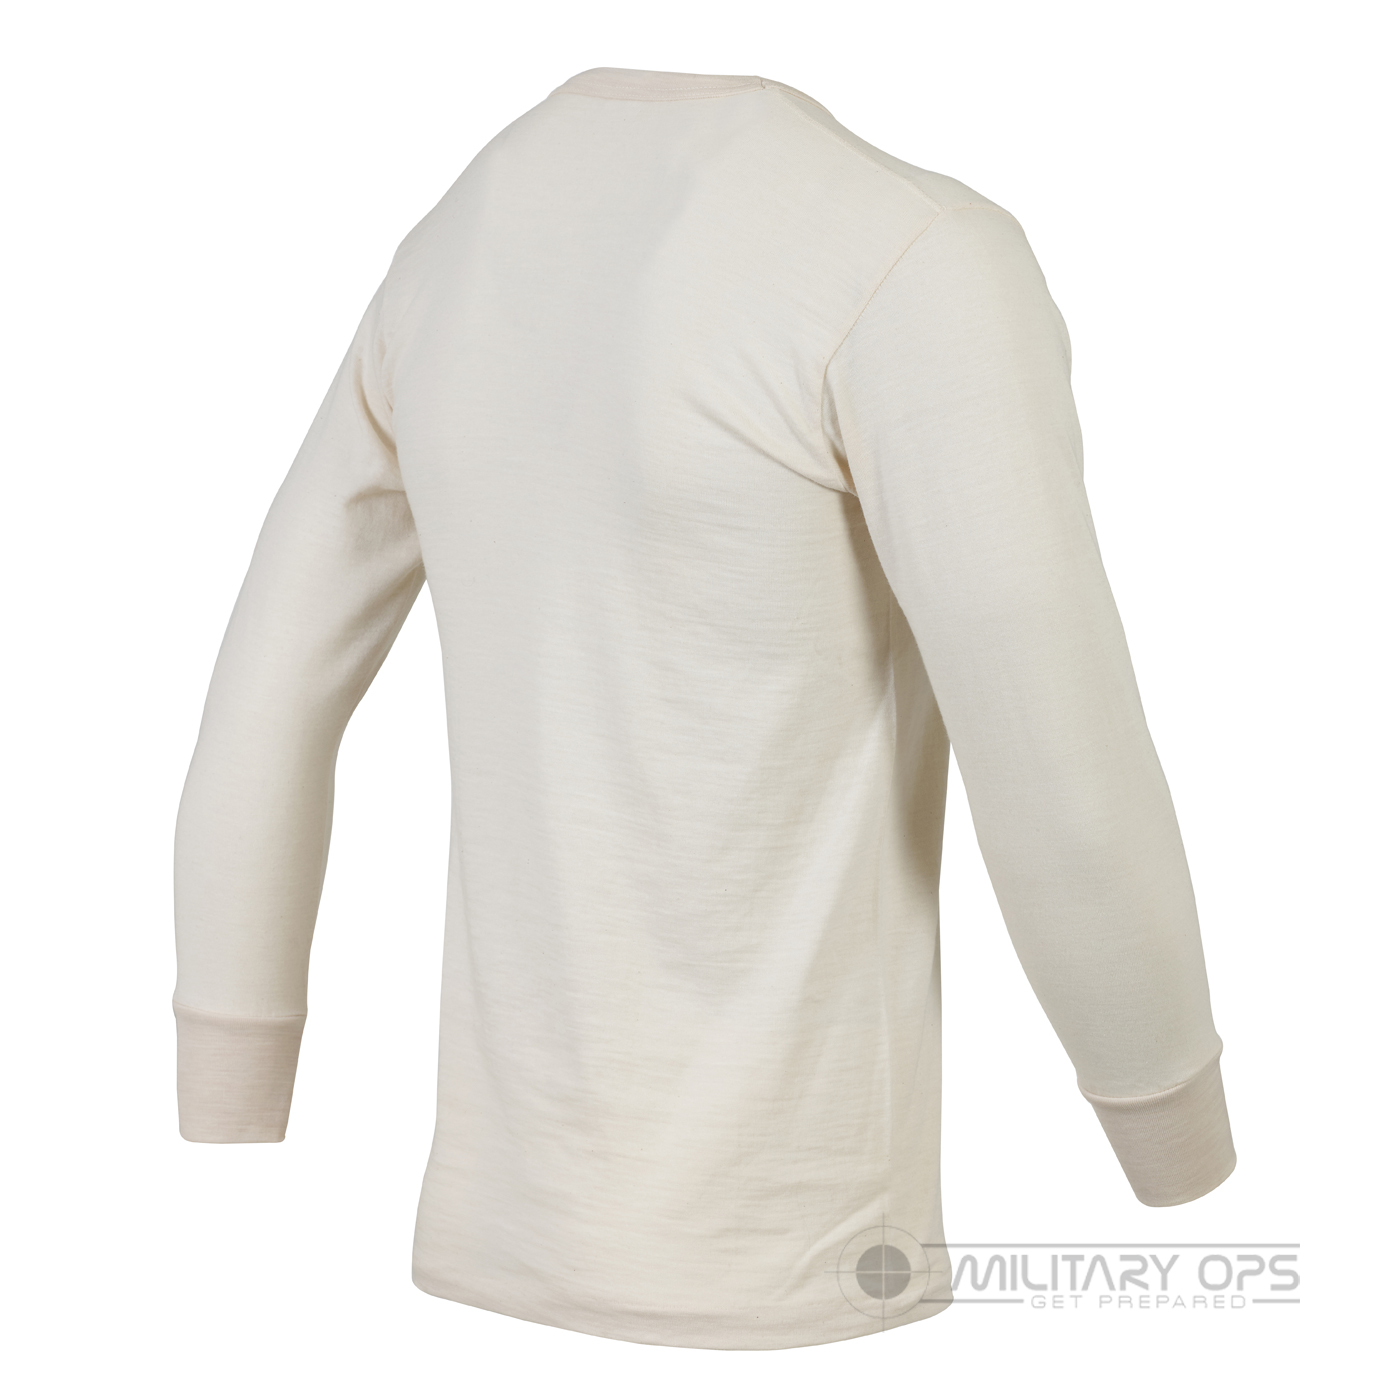 MILITARY THERMAL UNDERWEAR ARMY BASE LAYER EXTREME COLD ...